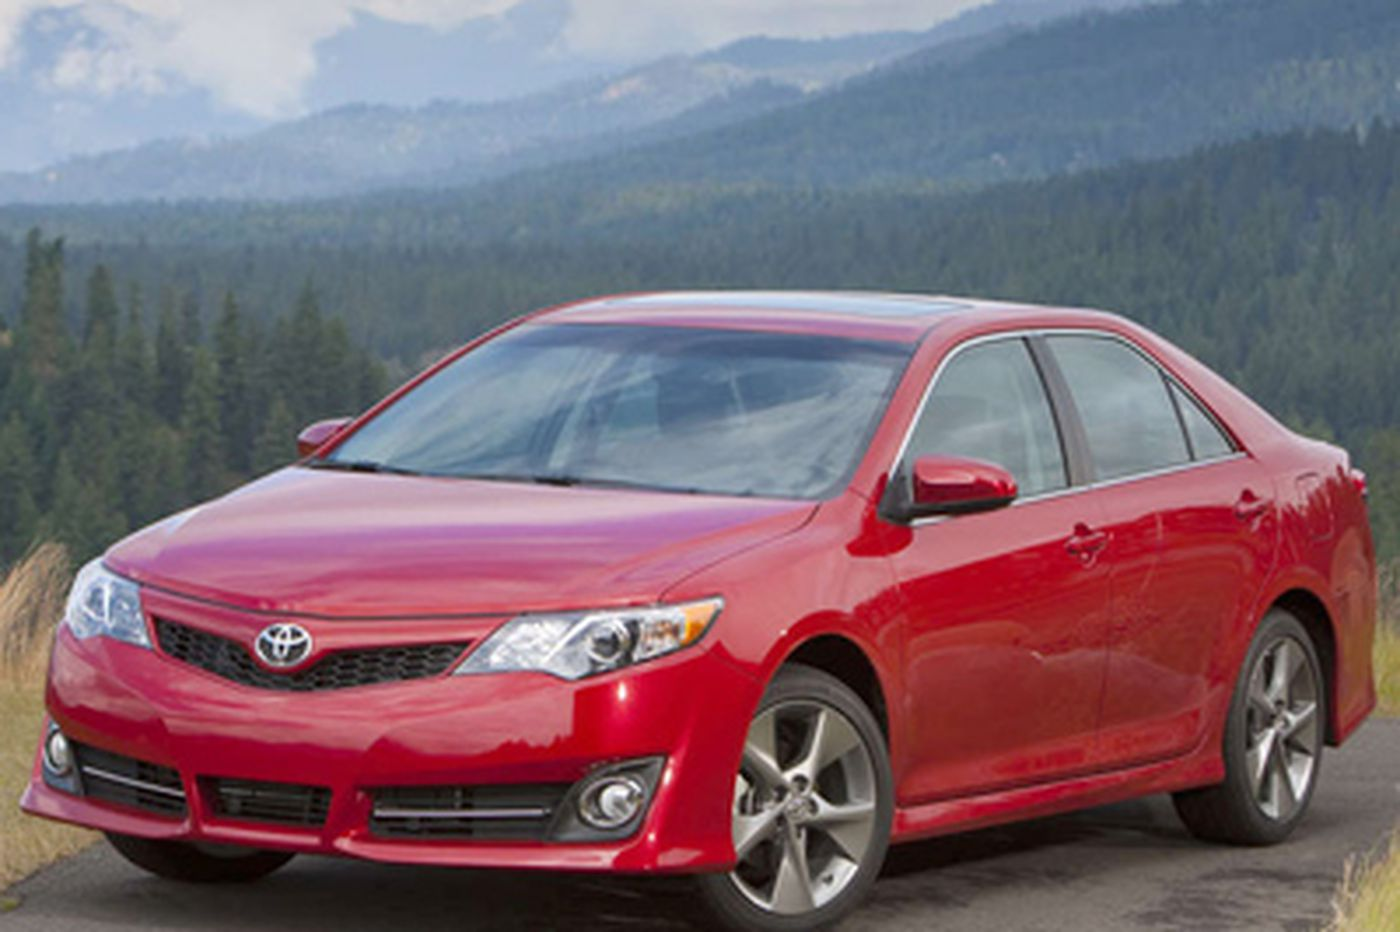 '12 Toyota Camry: Nimble, and more